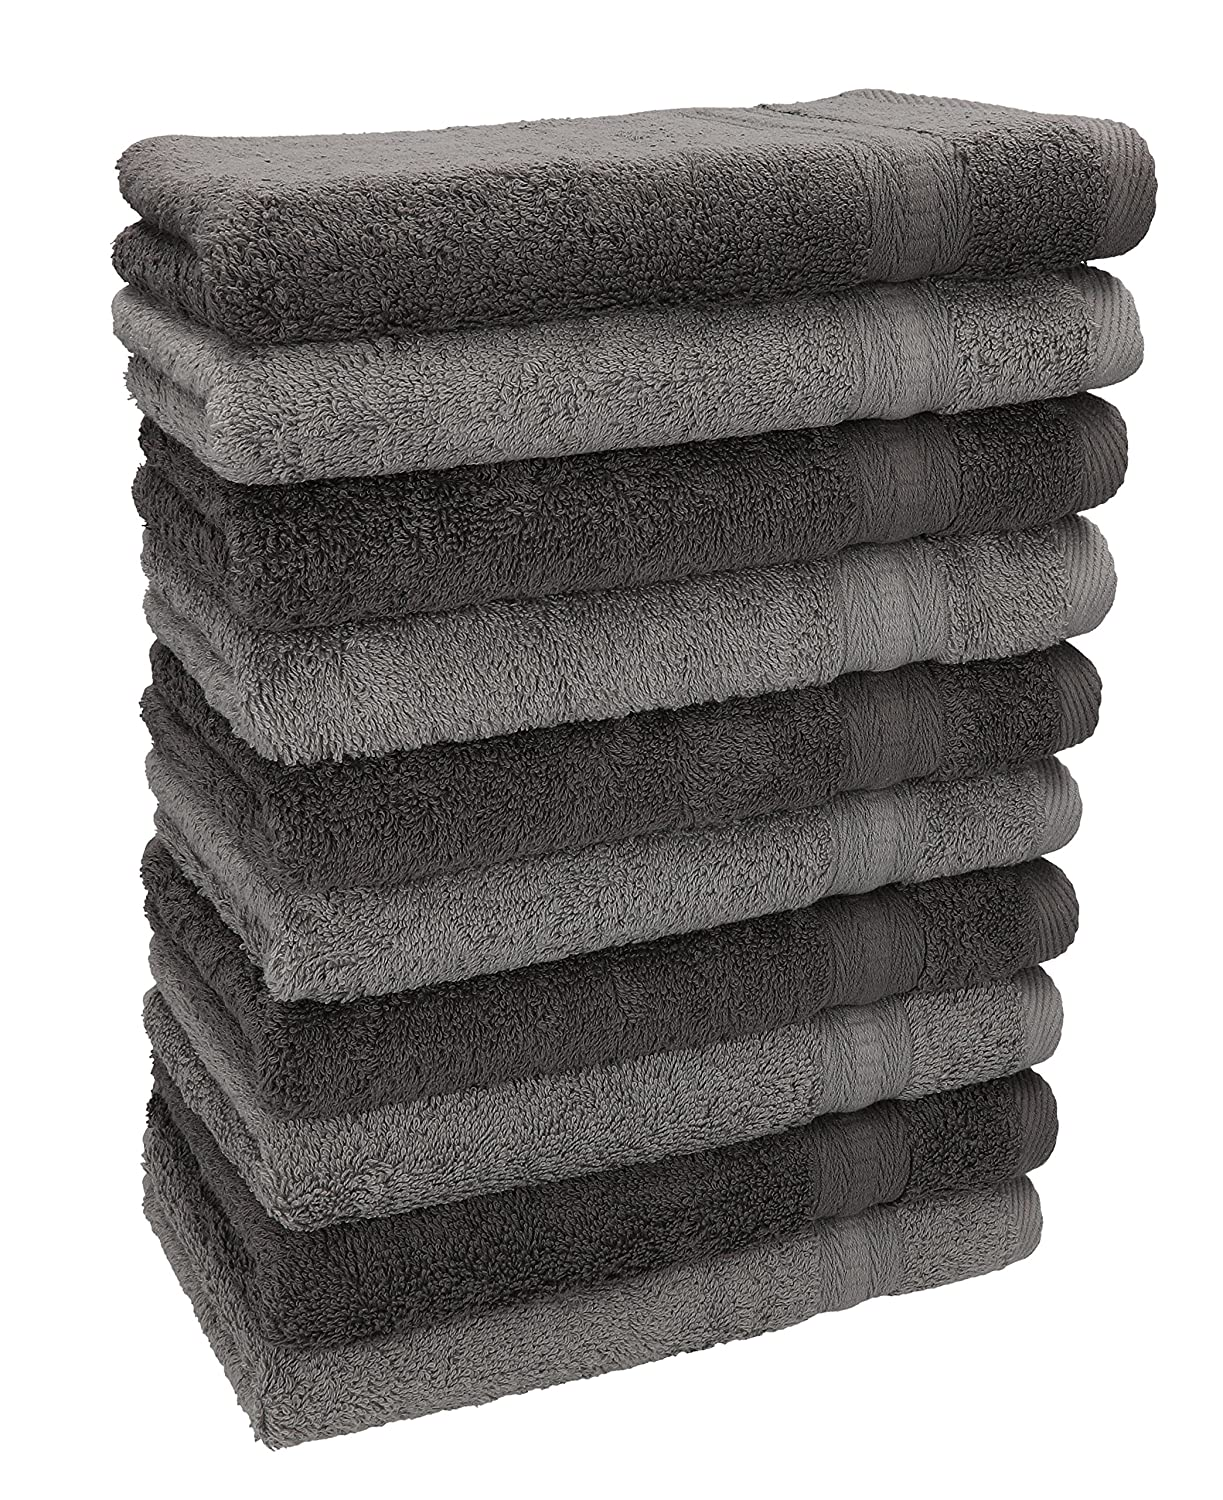 Betz Pack of 10 Guest Towels GOLD 600g/m² 100% Cotton 30x50 cm